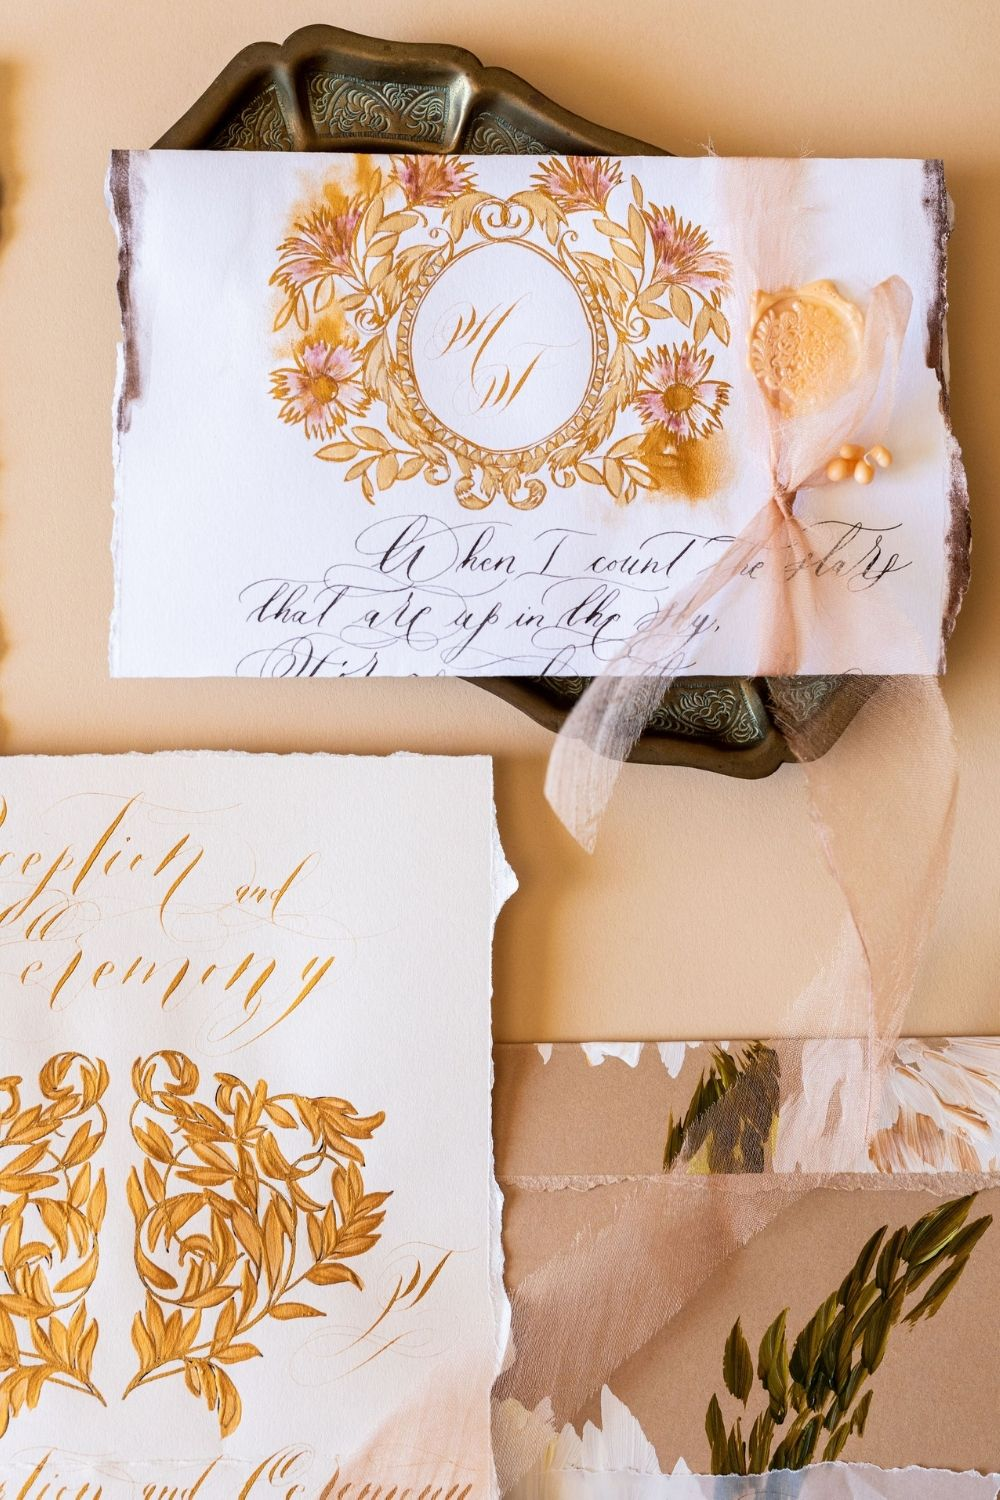 White and gold hand painted wedding invitations inspired by Italy for a luxury destination wedding